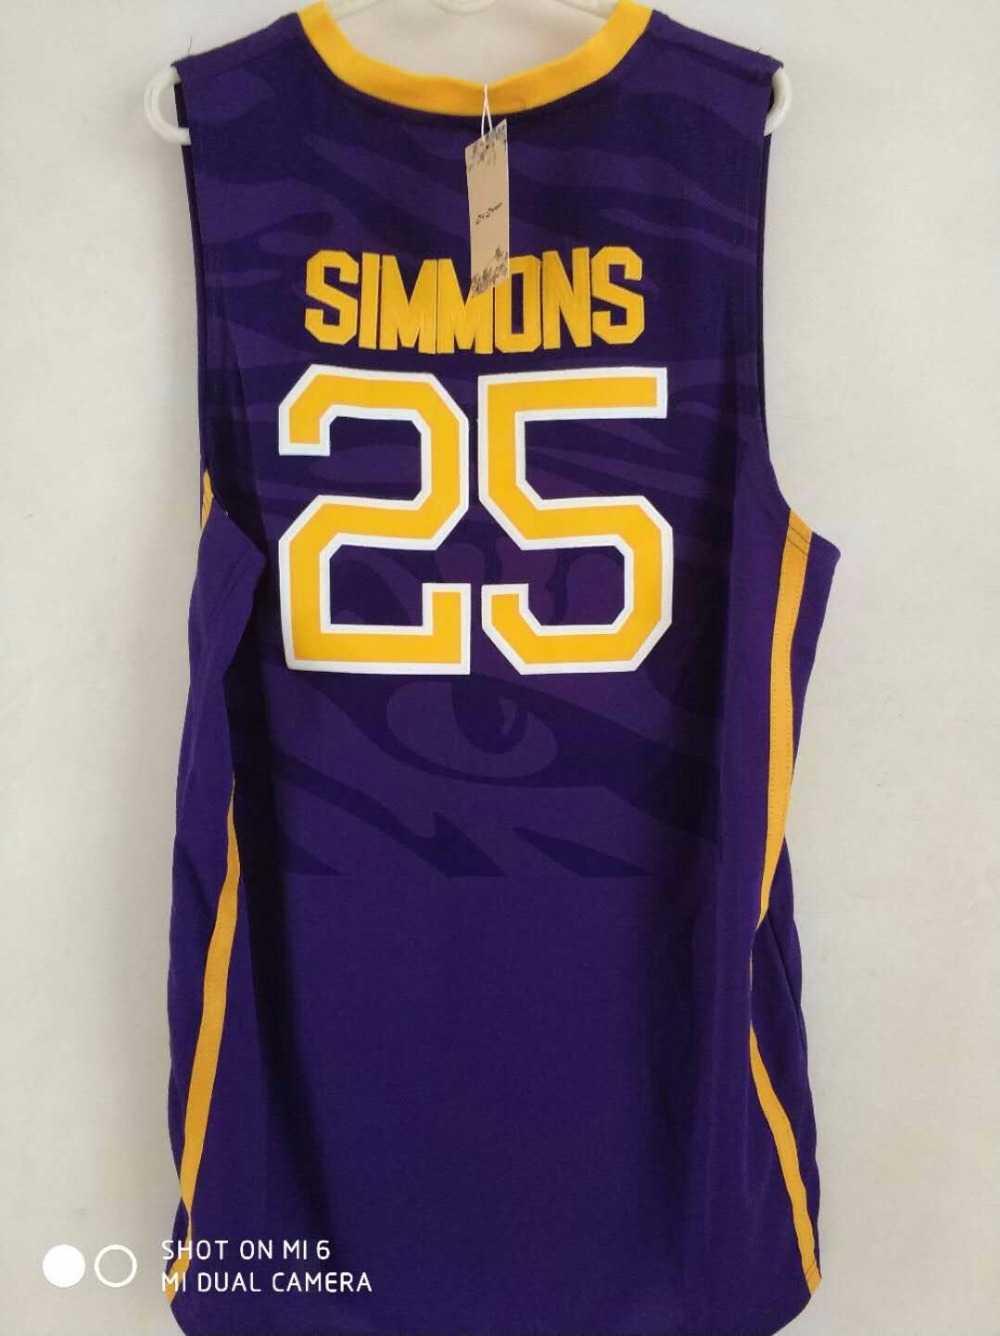 ca1d3337b0c ... do dower LSU Tigers 25 Ben Simmons WhiteYellowPurple Embroidery Stitched  College Basketball Jersey Size S- .